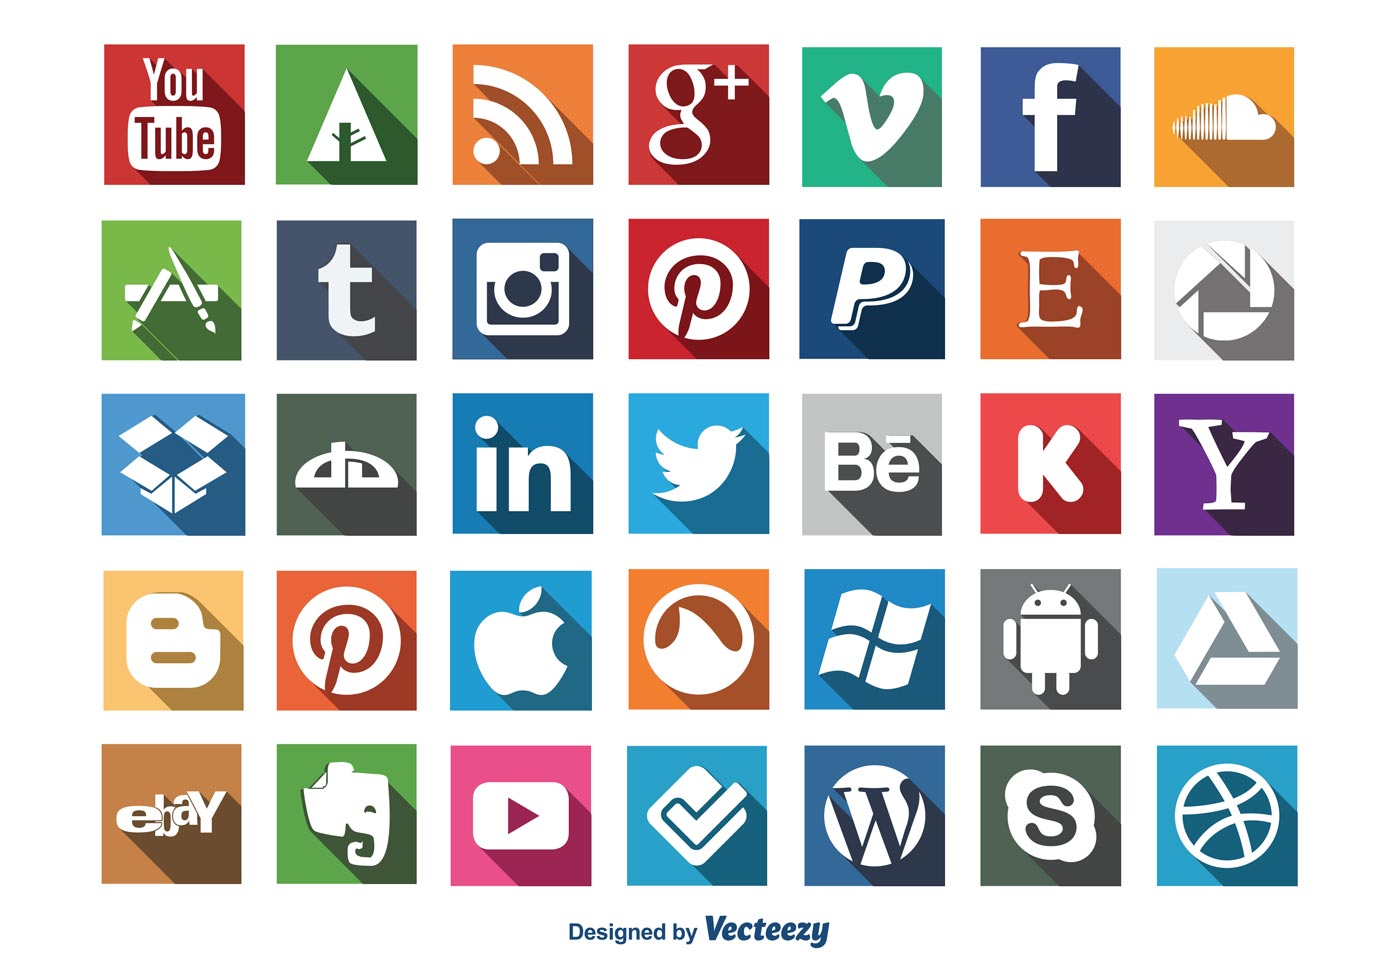 vector-social-media-long-shadow-icon-set.jpg